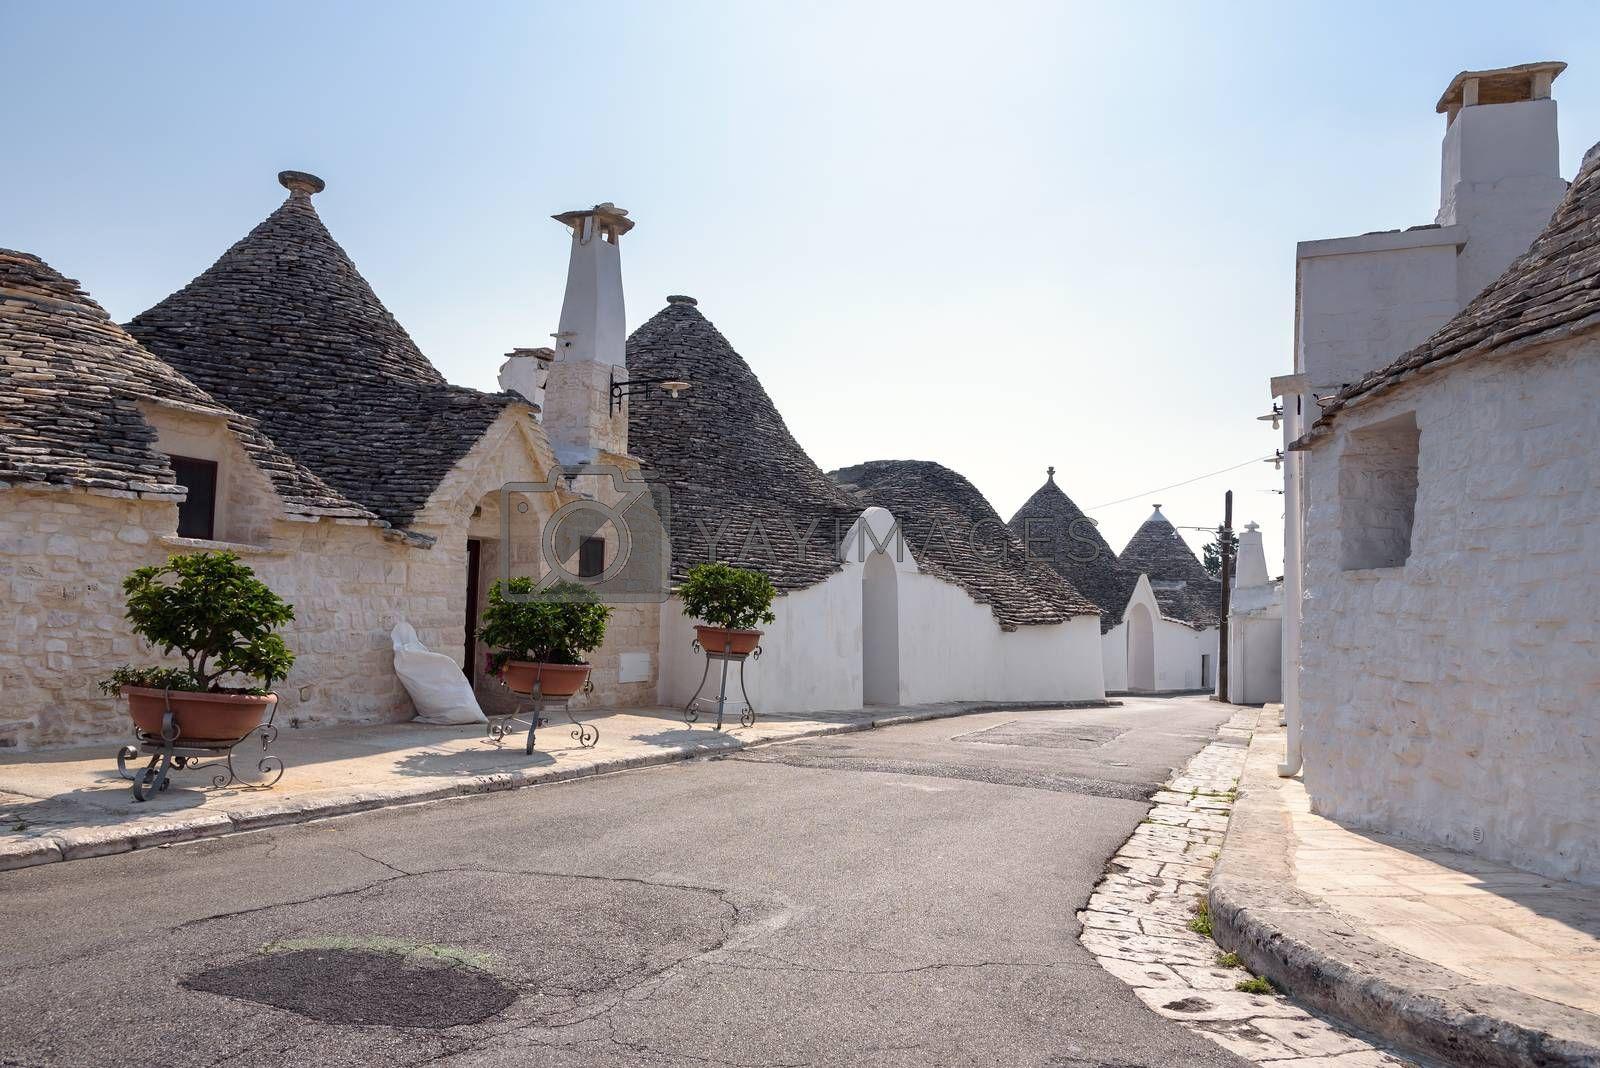 View of street in Alberobello town with famous trulli houses, Italy